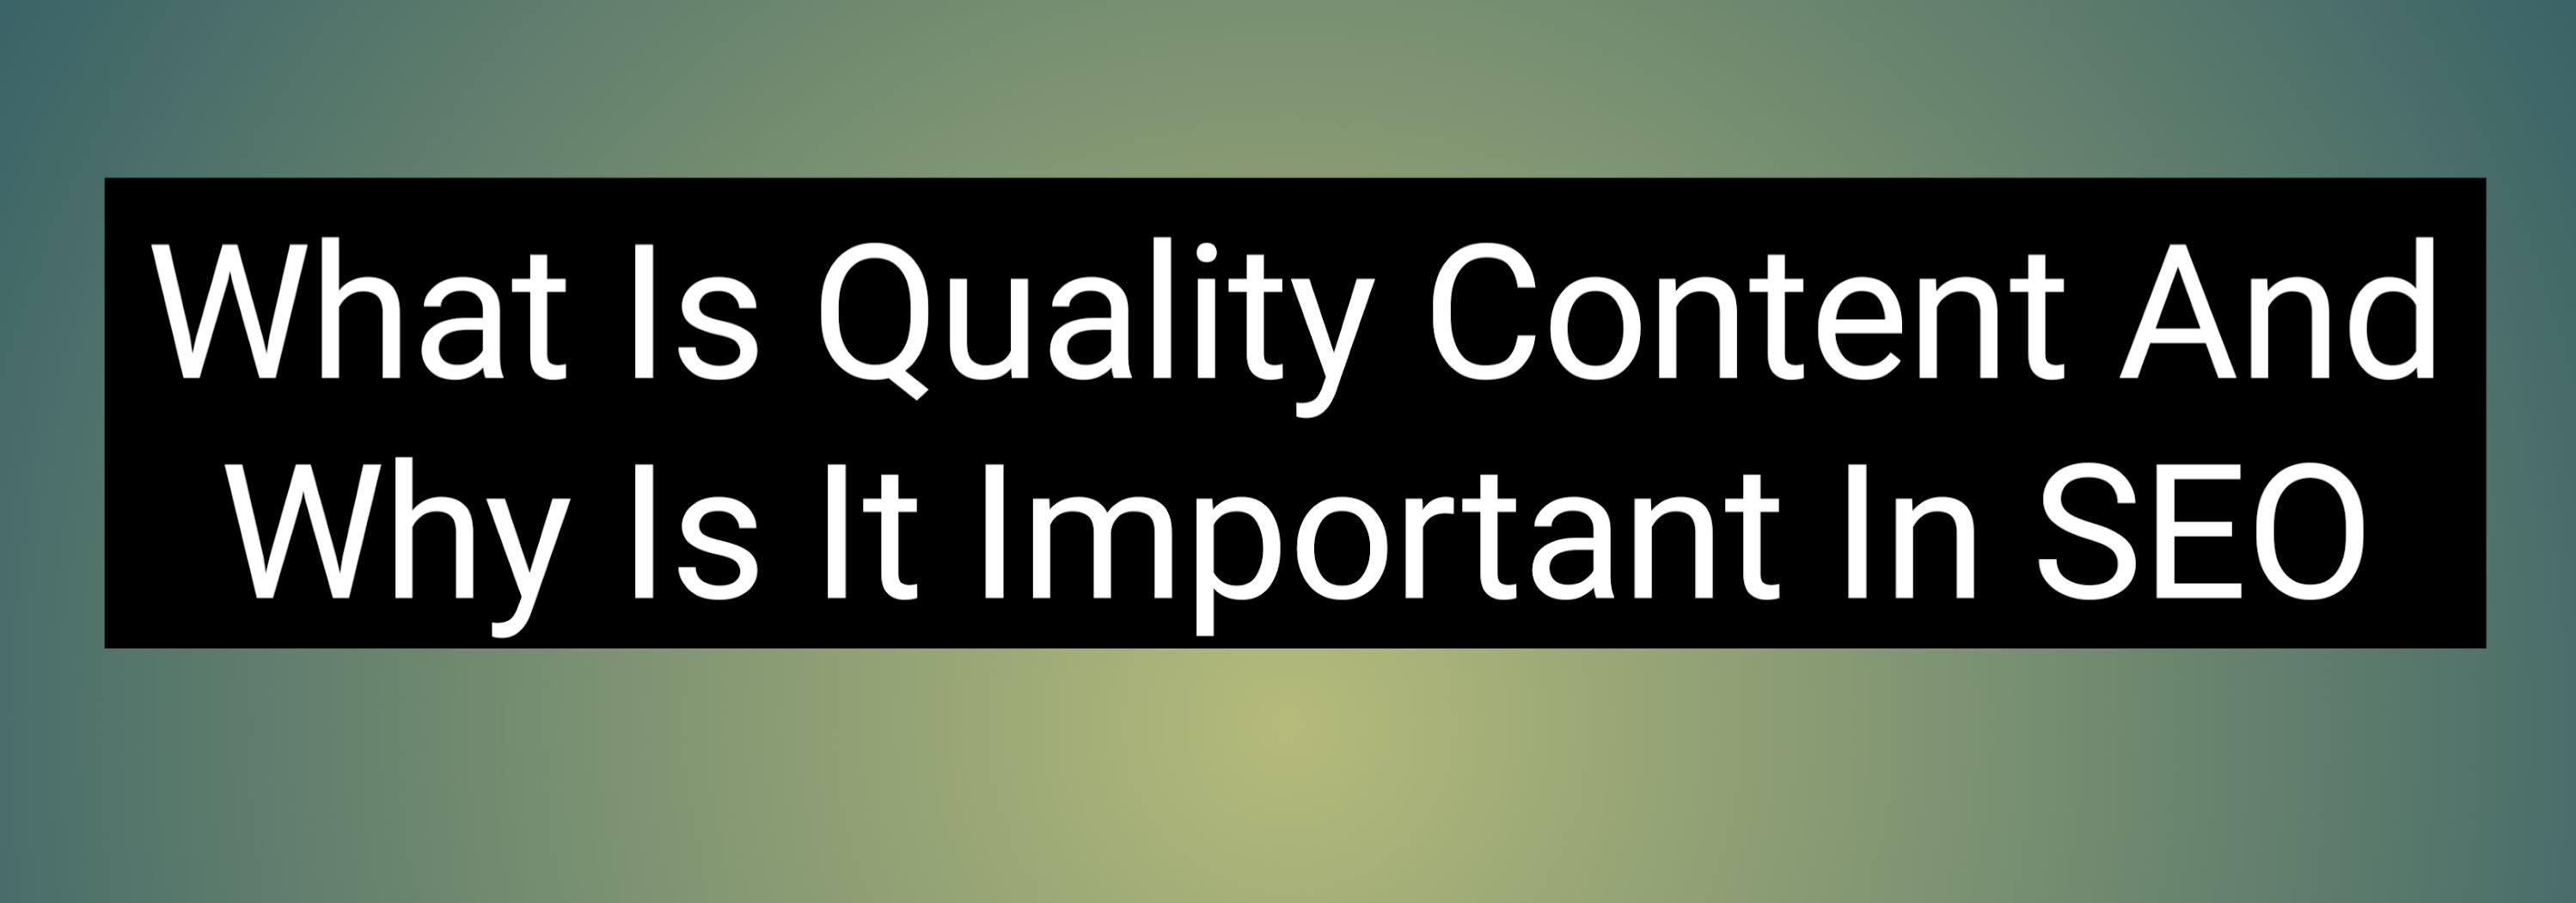 What Is Quality Content And Why Is It Important In SEO